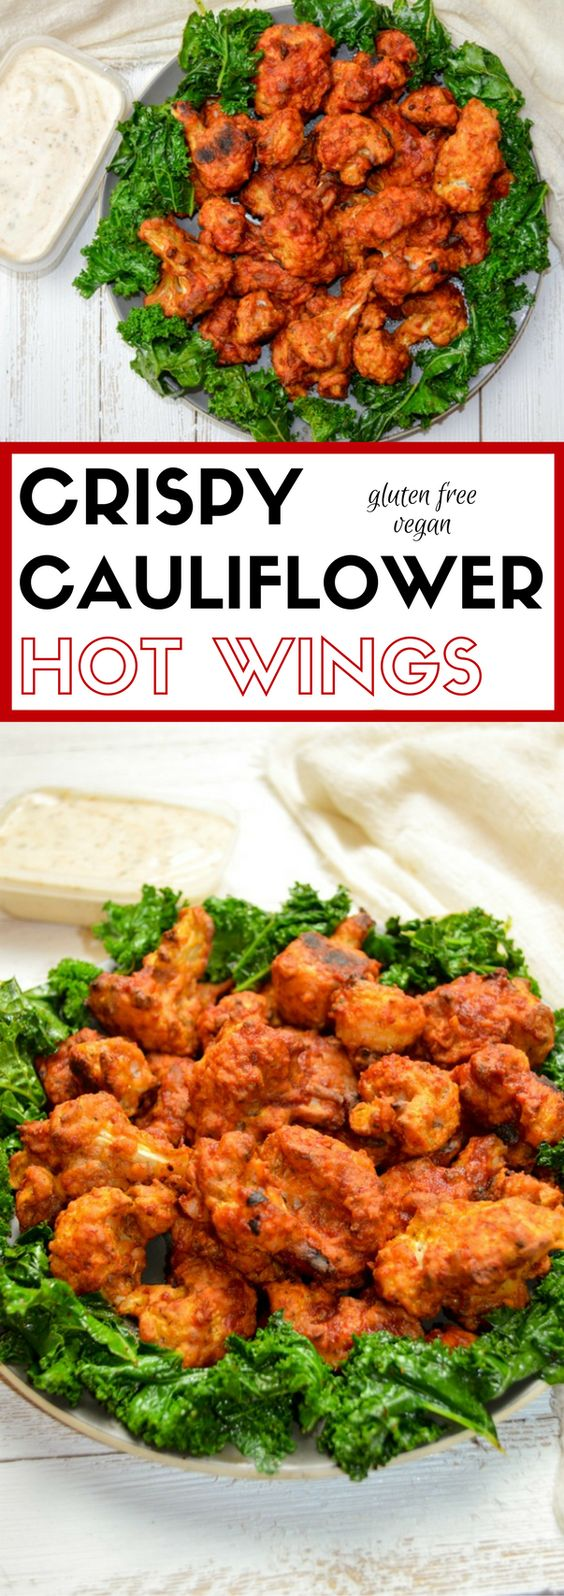 ★★★★☆ 7561 ratings | CRISPY CAULIFLOWER HOT WINGS – VEGAN AND GLUTEN FREE  #HEALTHYFOOD #EASYRECIPES #DINNER #LAUCH #DELICIOUS #EASY #HOLIDAYS #RECIPE #desserts #specialdiet #worldcuisine #cake #appetizers #healthyrecipes #drinks #cookingmethod #italianrecipes #meat #veganrecipes #cookies #pasta #fruit #salad #soupappetizers #nonalcoholicdrinks #mealplanning #vegetables #soup #pastry #chocolate #dairy #alcoholicdrinks #bulgursalad #baking #snacks #beefrecipes #meatappetizers #mexicanrecipes #bread #asianrecipes #seafoodappetizers #muffins #breakfastandbrunch #condiments #cupcakes #cheese #chickenrecipes #pie #coffee #nobakedesserts #healthysnacks #seafood #grain #lunchesdinners #mexican #quickbread #liquor